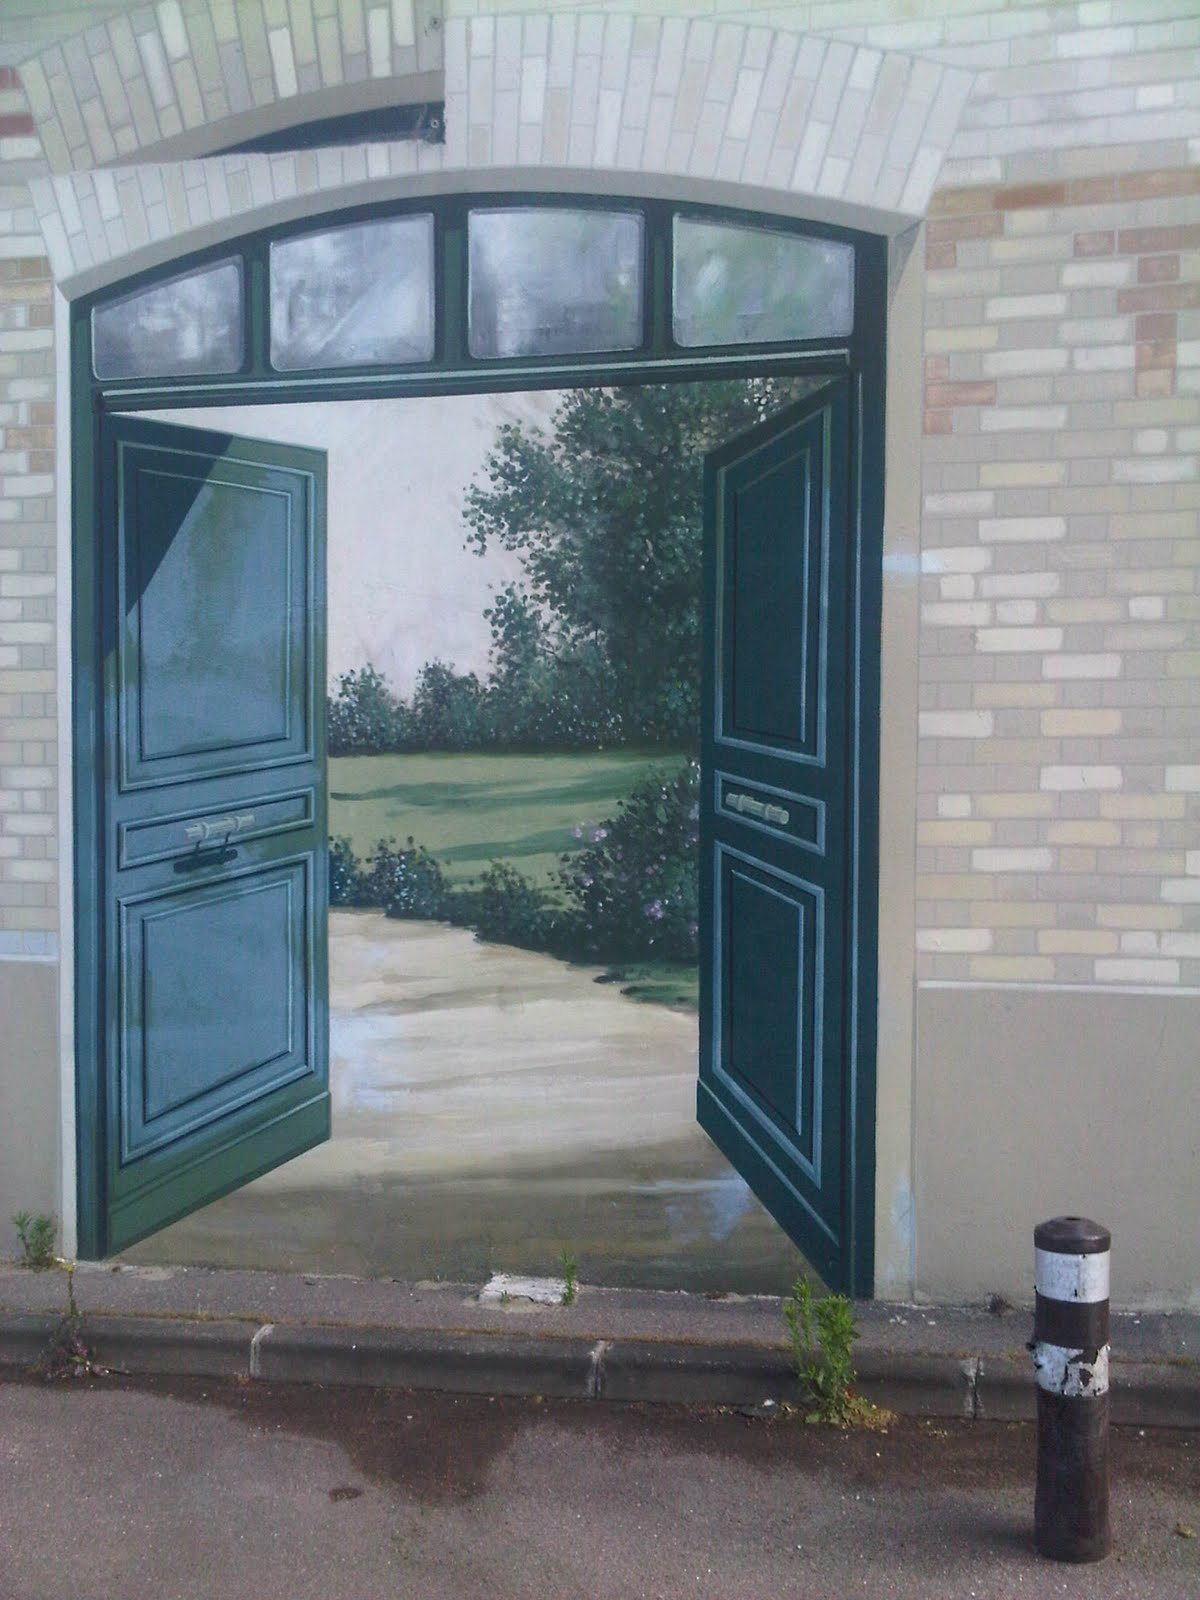 The painted door opens onto an imaginary park as if a hidden world was inside the building. : door paintings - Pezcame.Com